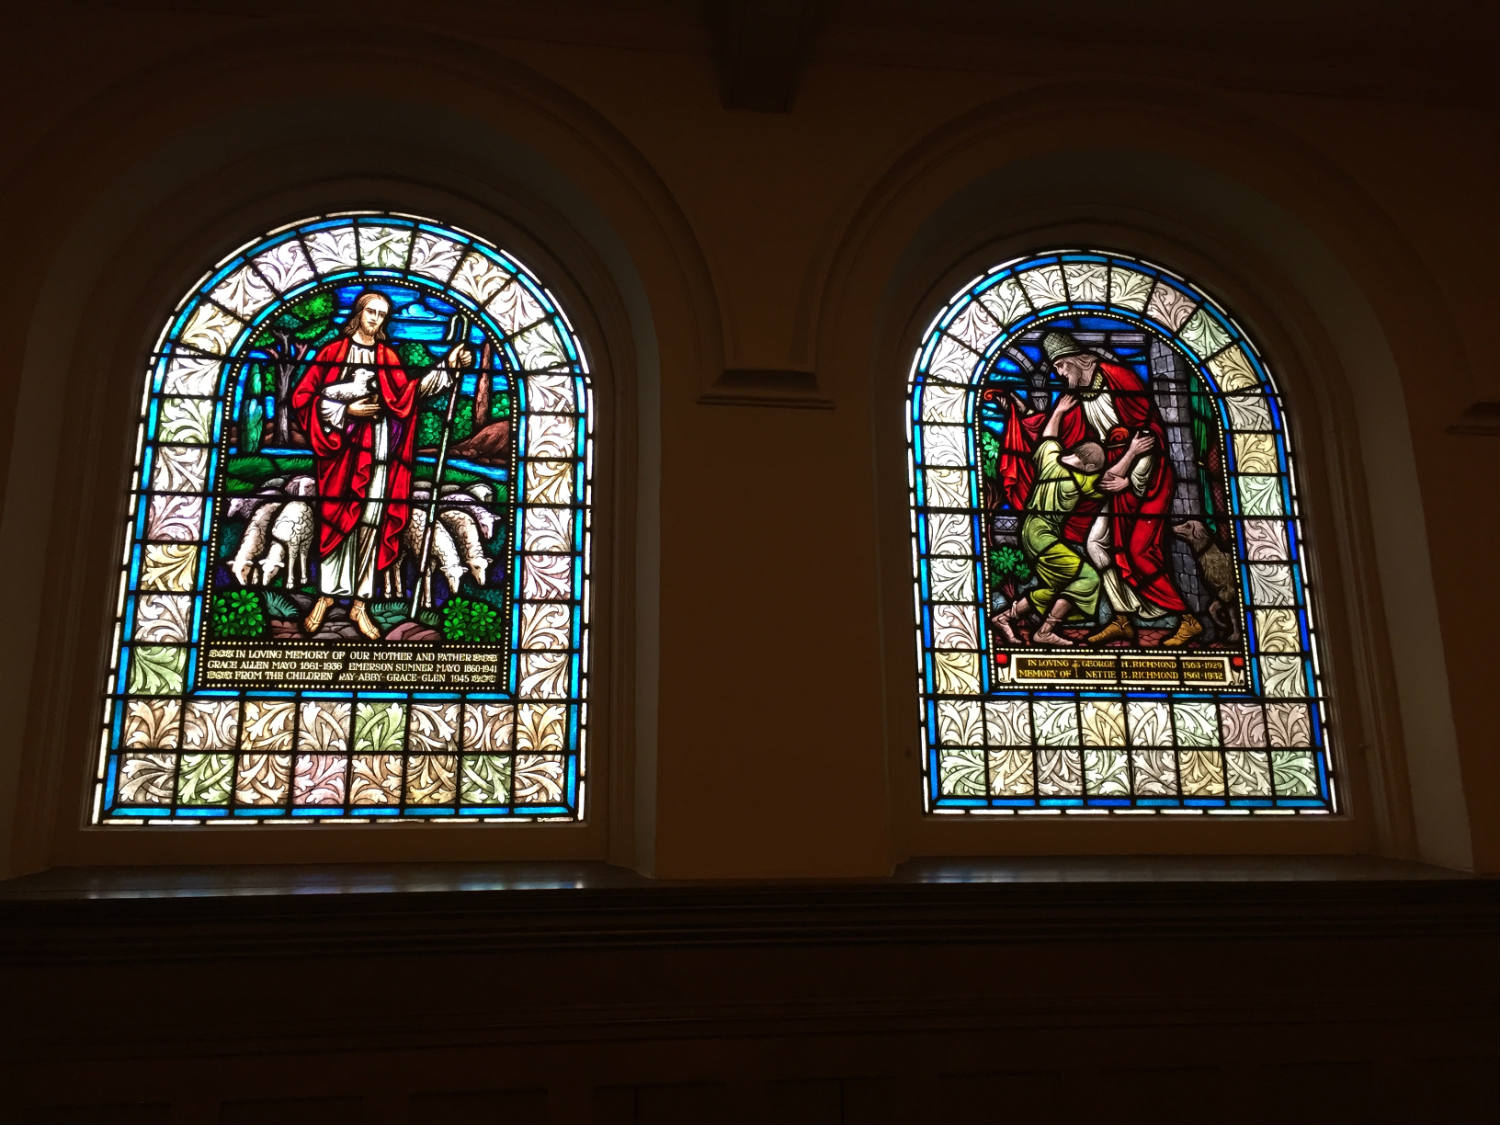 Stained Glass Windows at Third Presbyterian Church in Rochester, NY